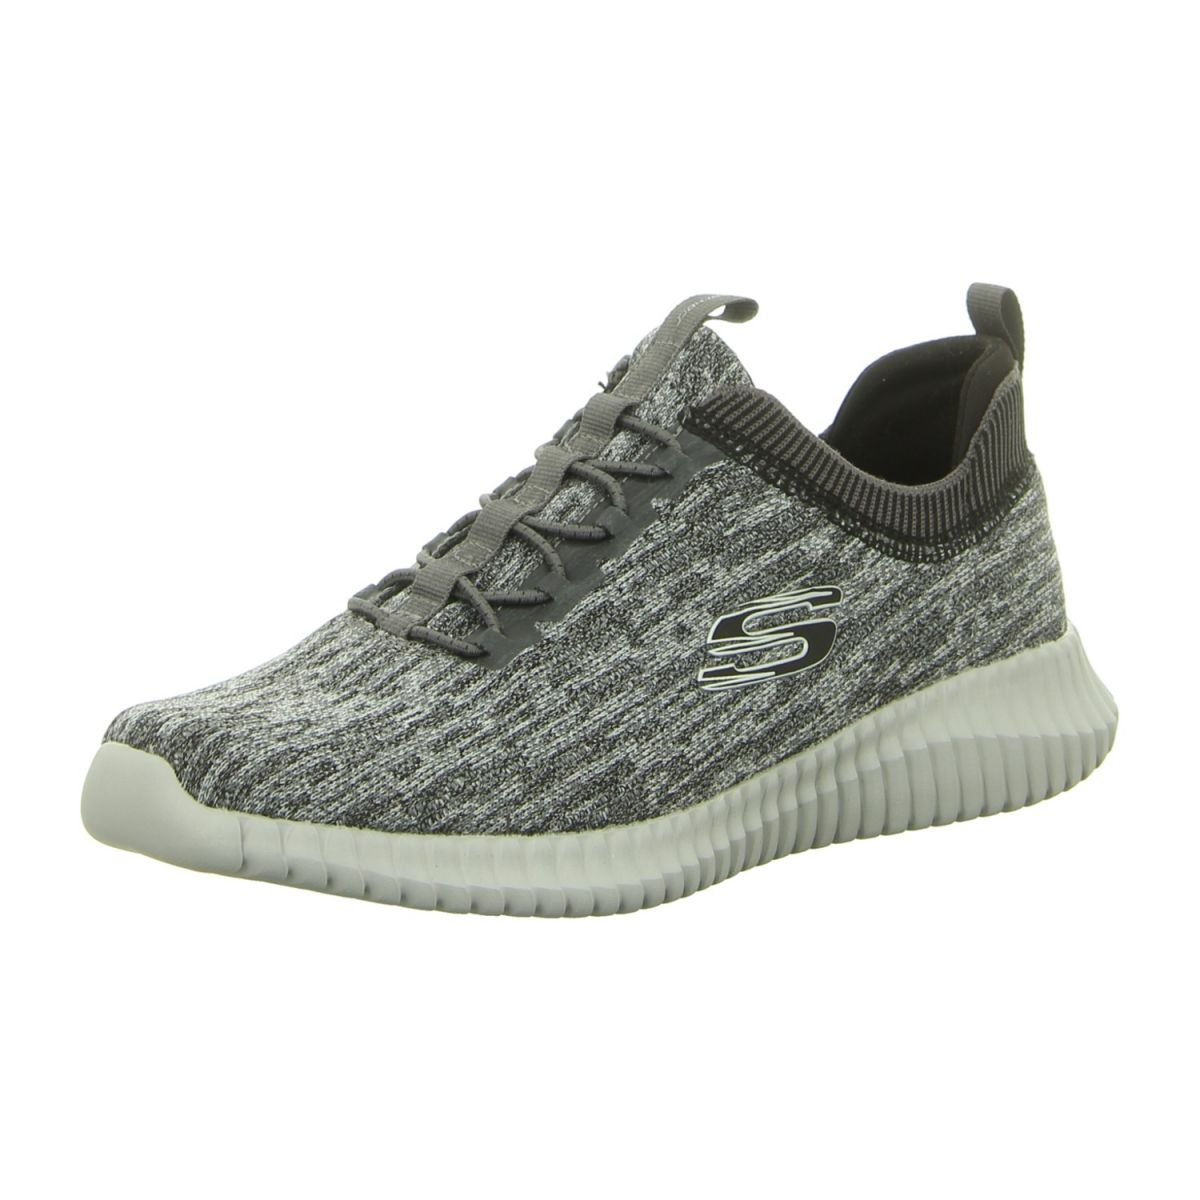 NEU: Skechers Slipper EliteFlex Hartnell 52642 GYBK gray